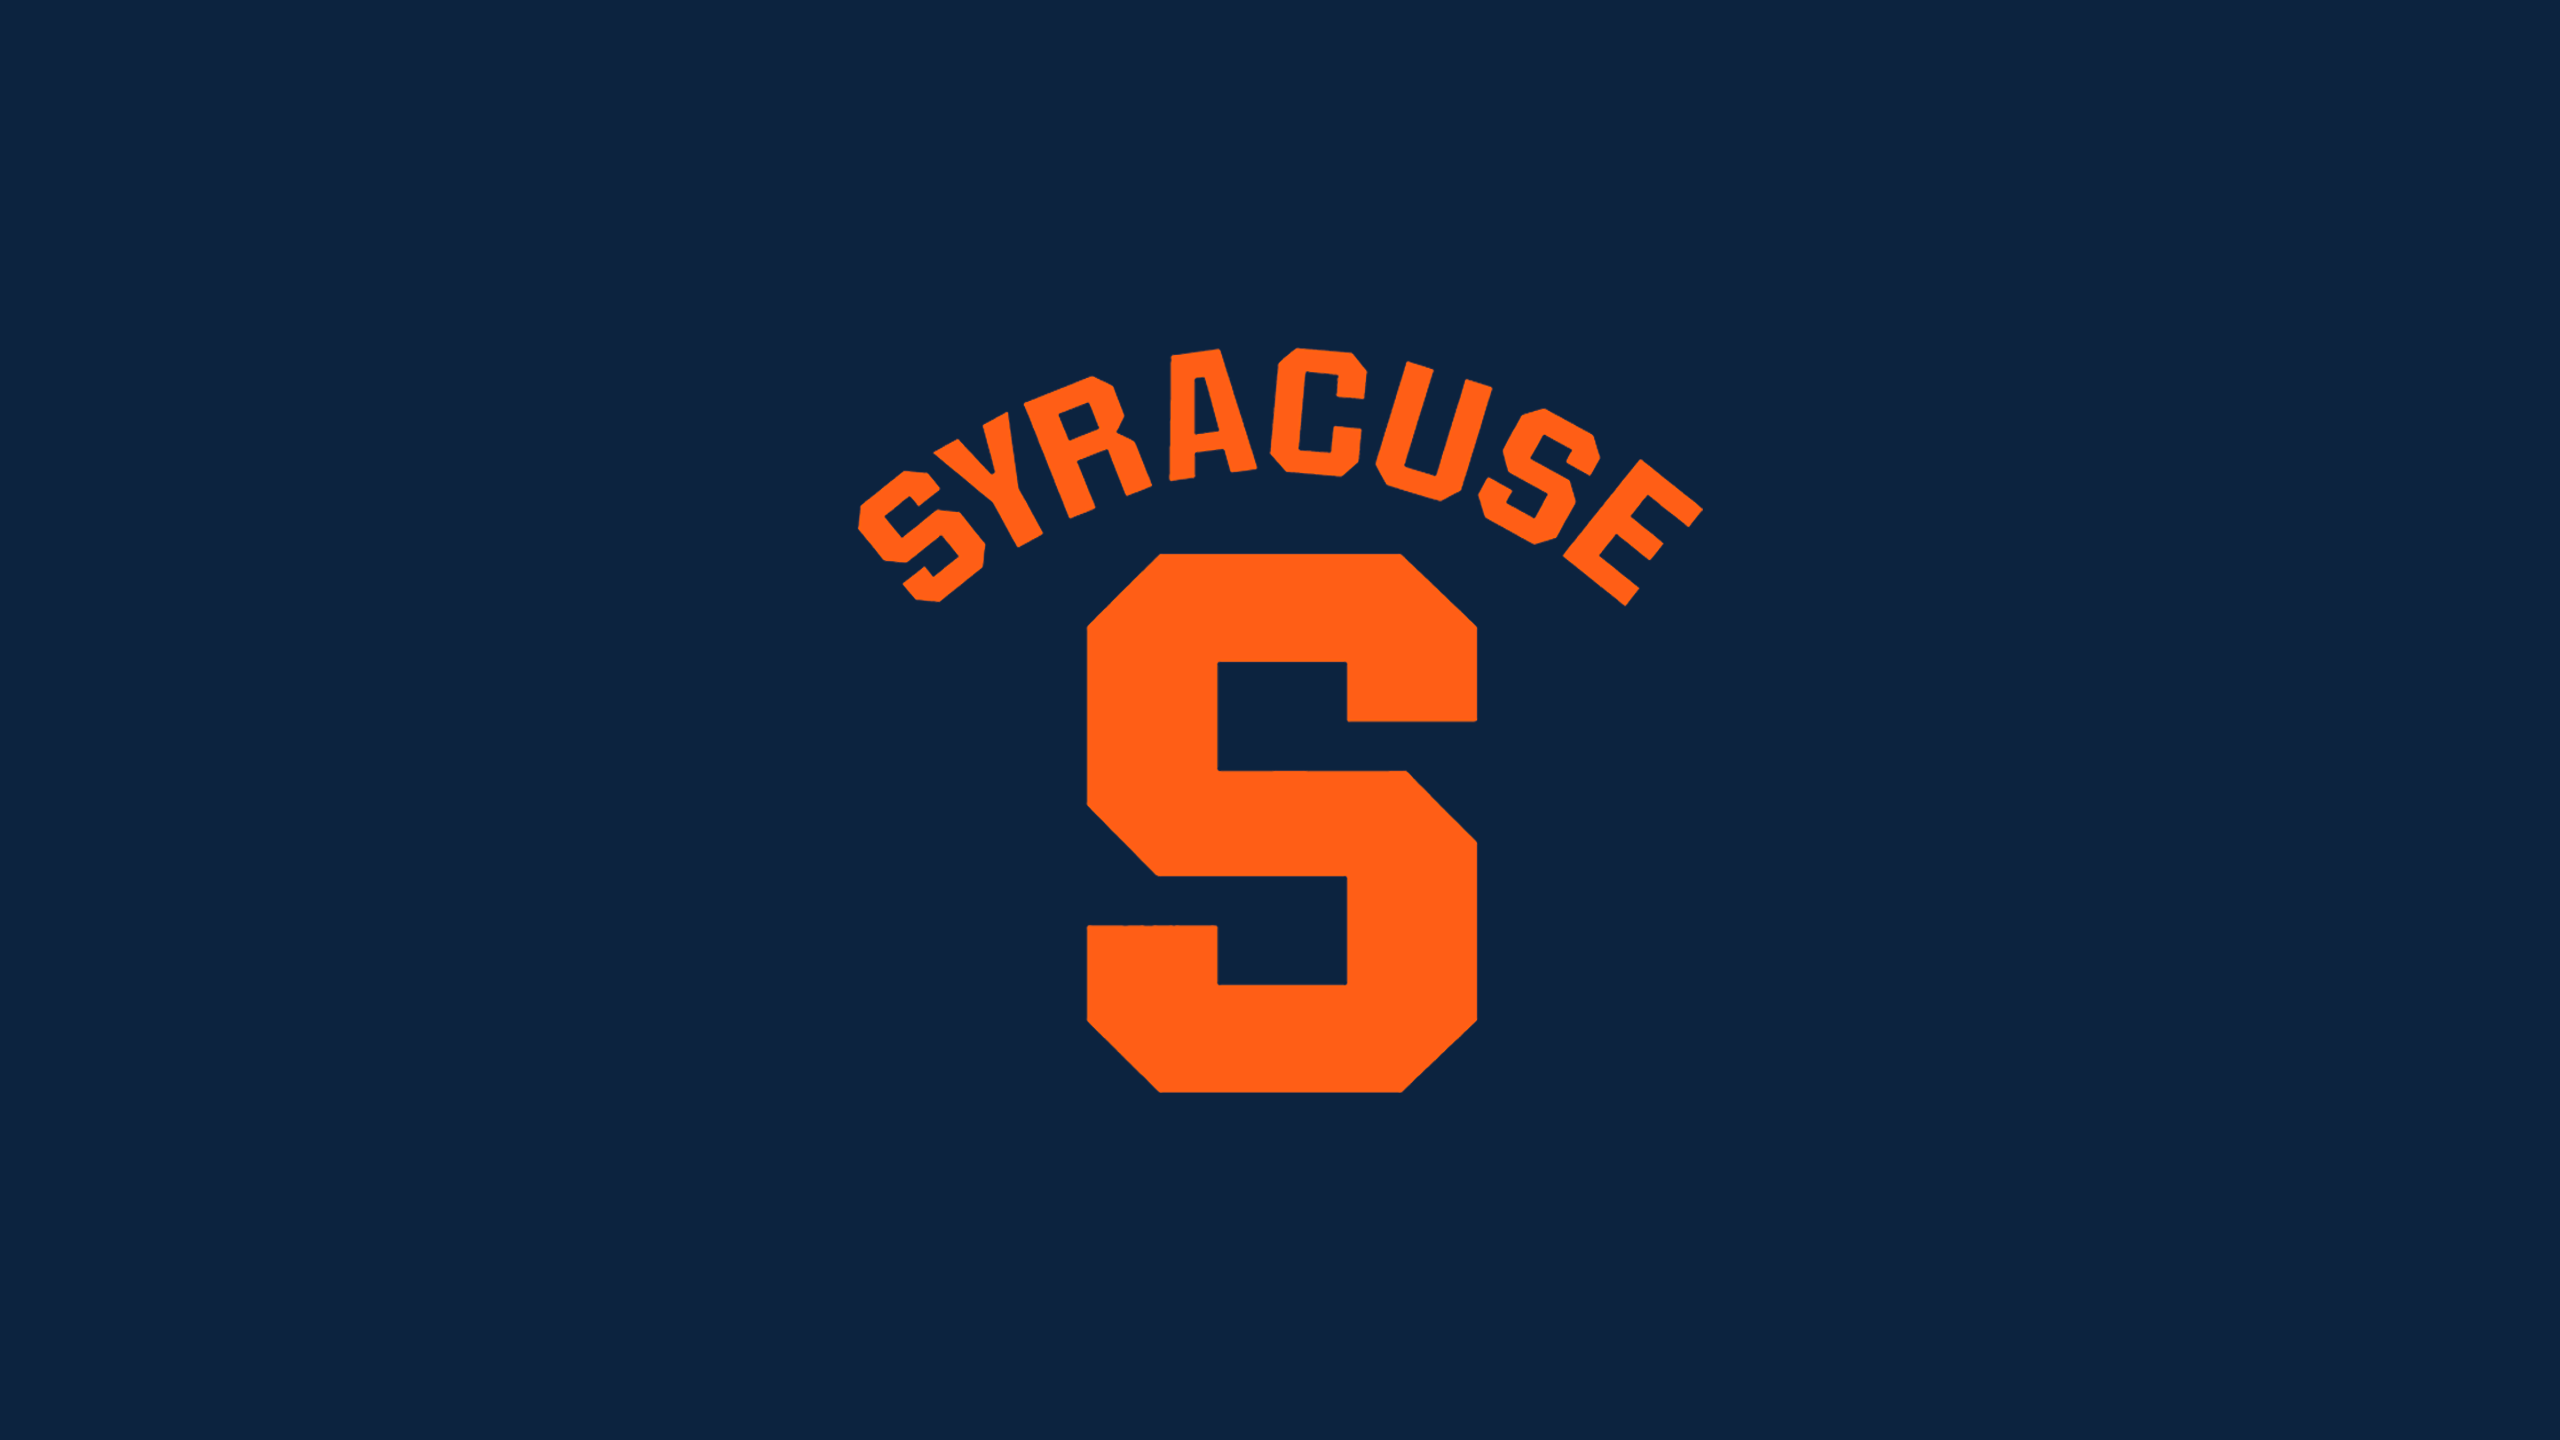 Syracuse University Orange